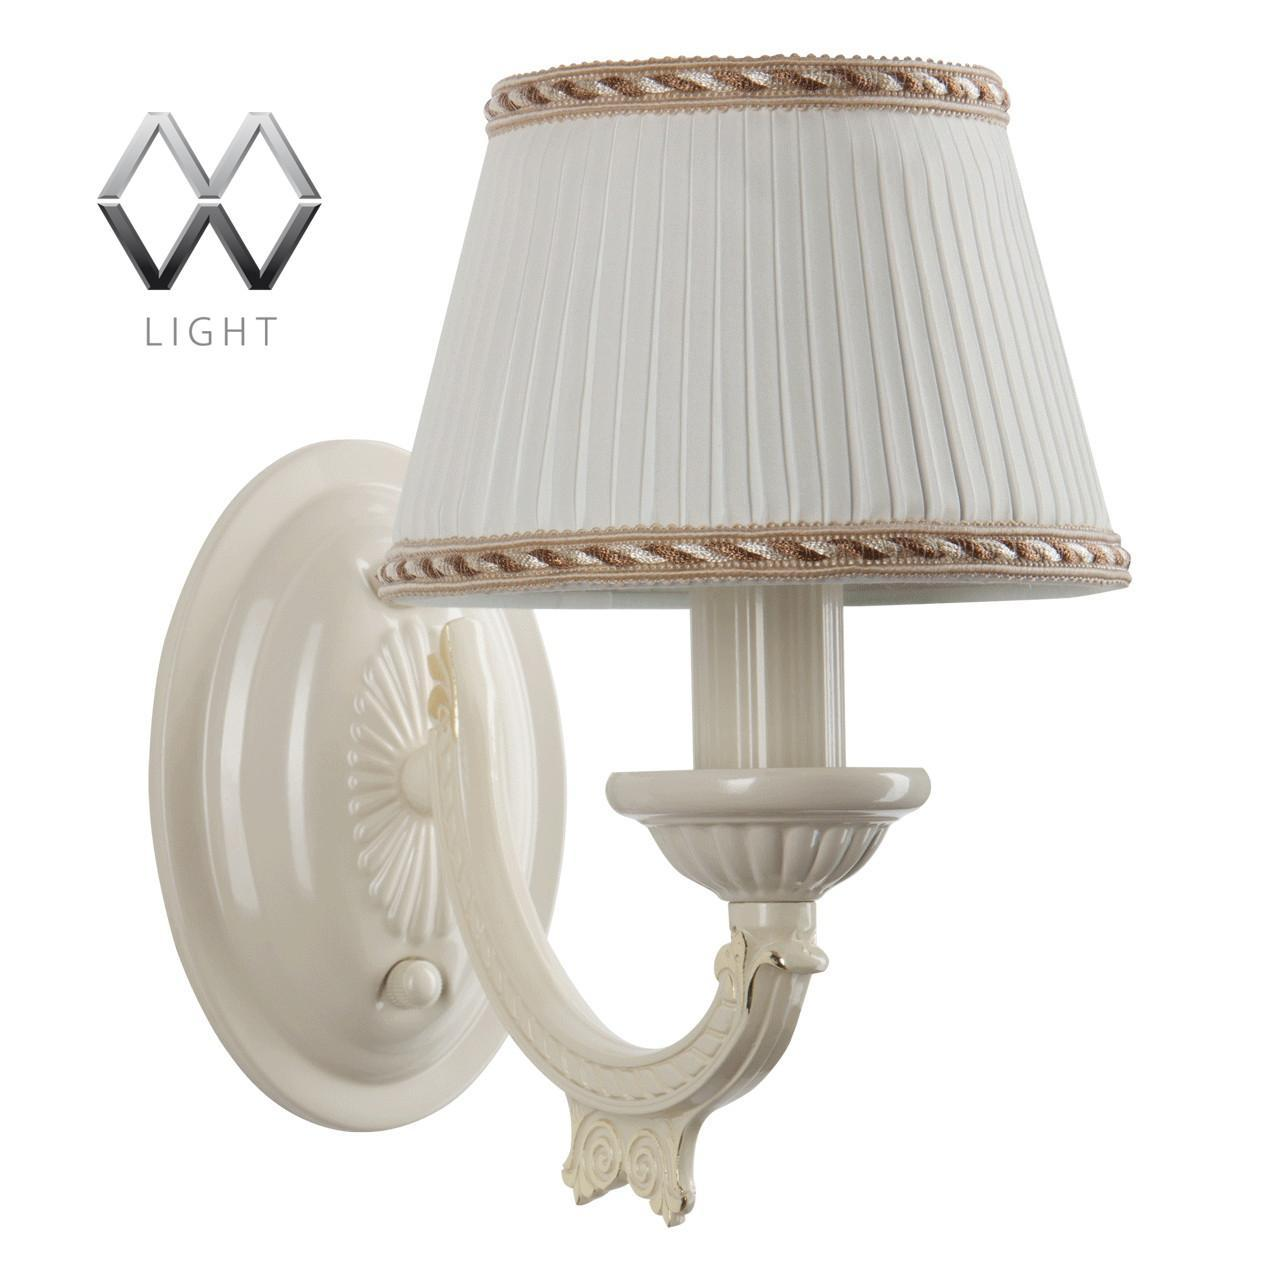 Бра MW-Light Ариадна 450022601